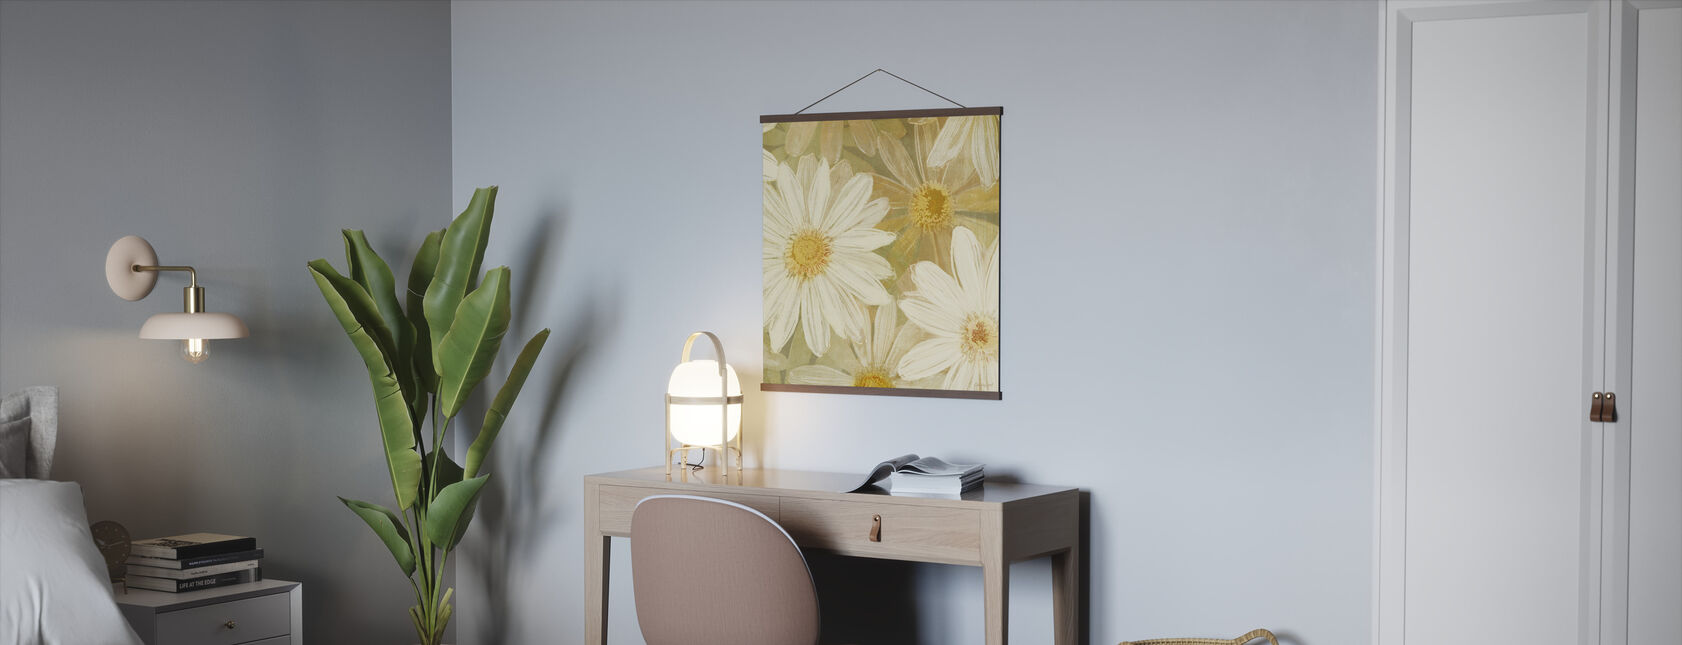 Daisy Story Square II - Poster - Office